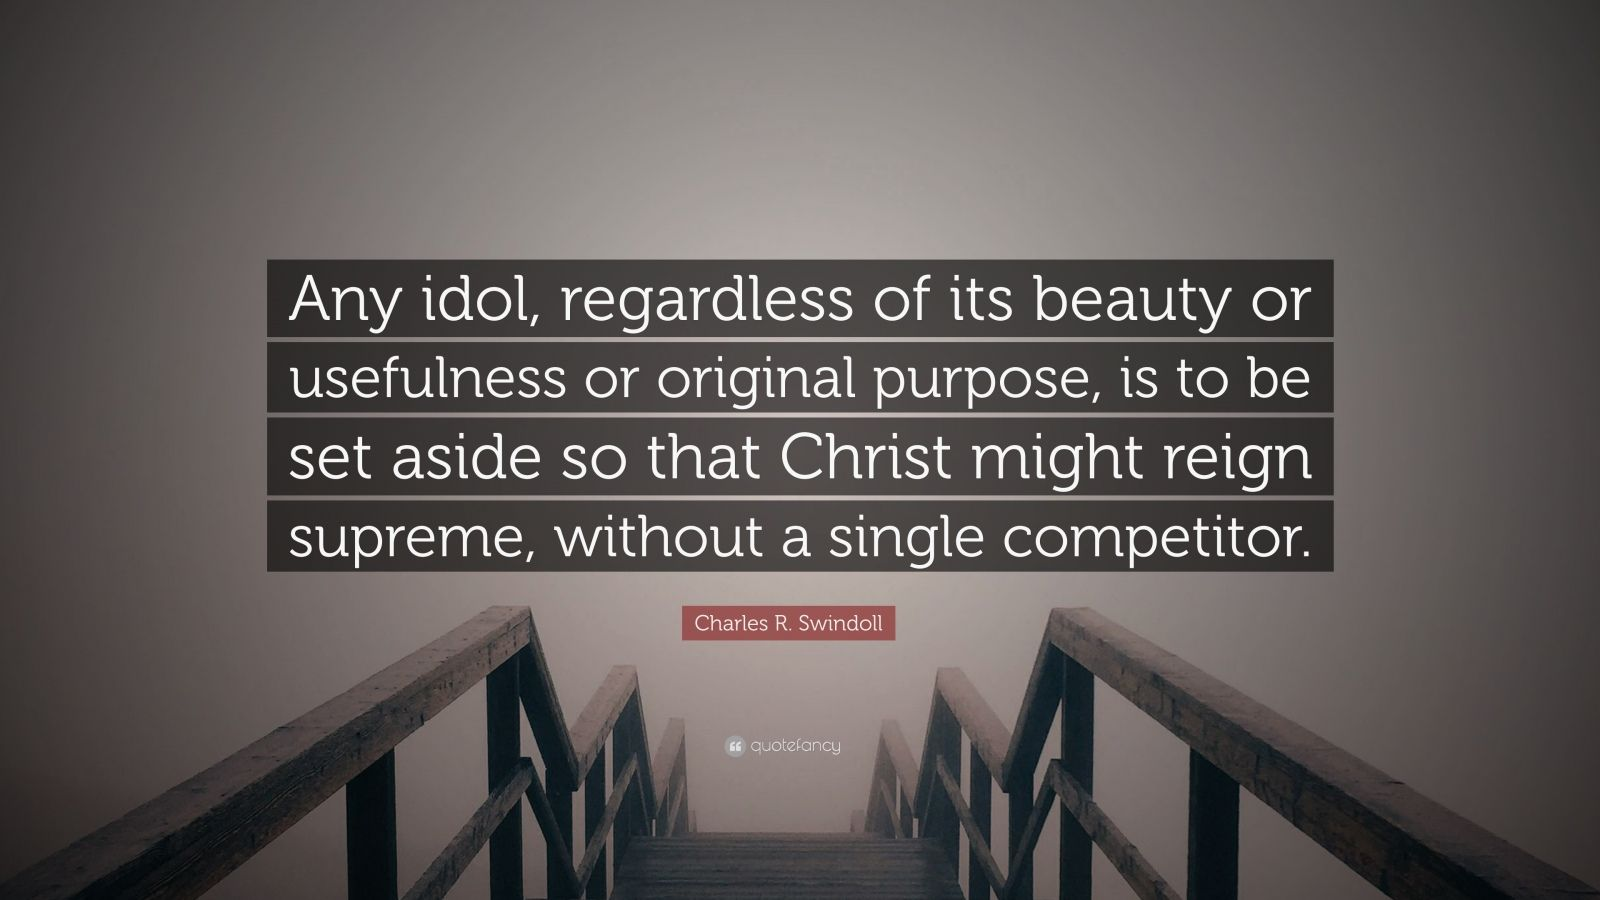 """Charles R. Swindoll Quote: """"Any idol, regardless of its beauty or usefulness or original purpose, is to be set aside so that Christ might reign supreme, without a single competitor."""""""